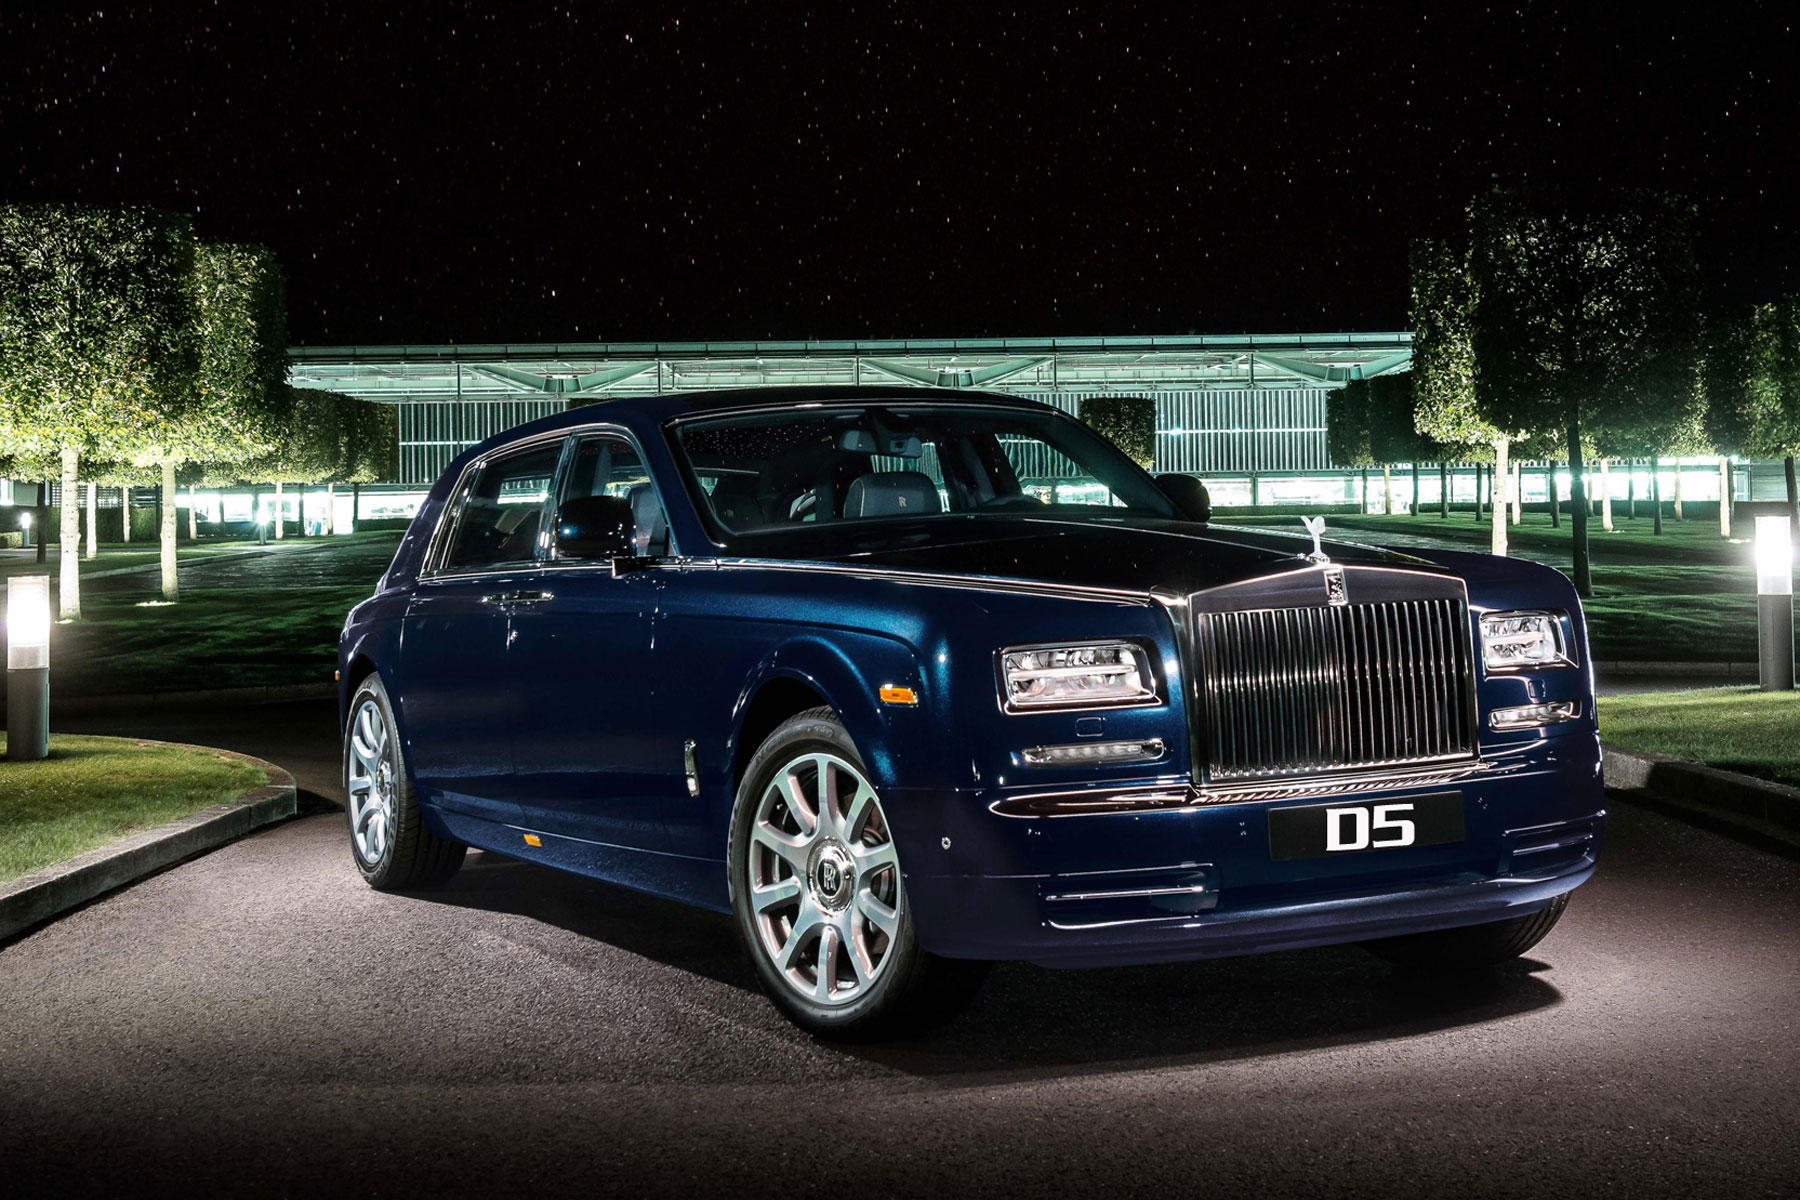 rolls-royce-phantom-d5